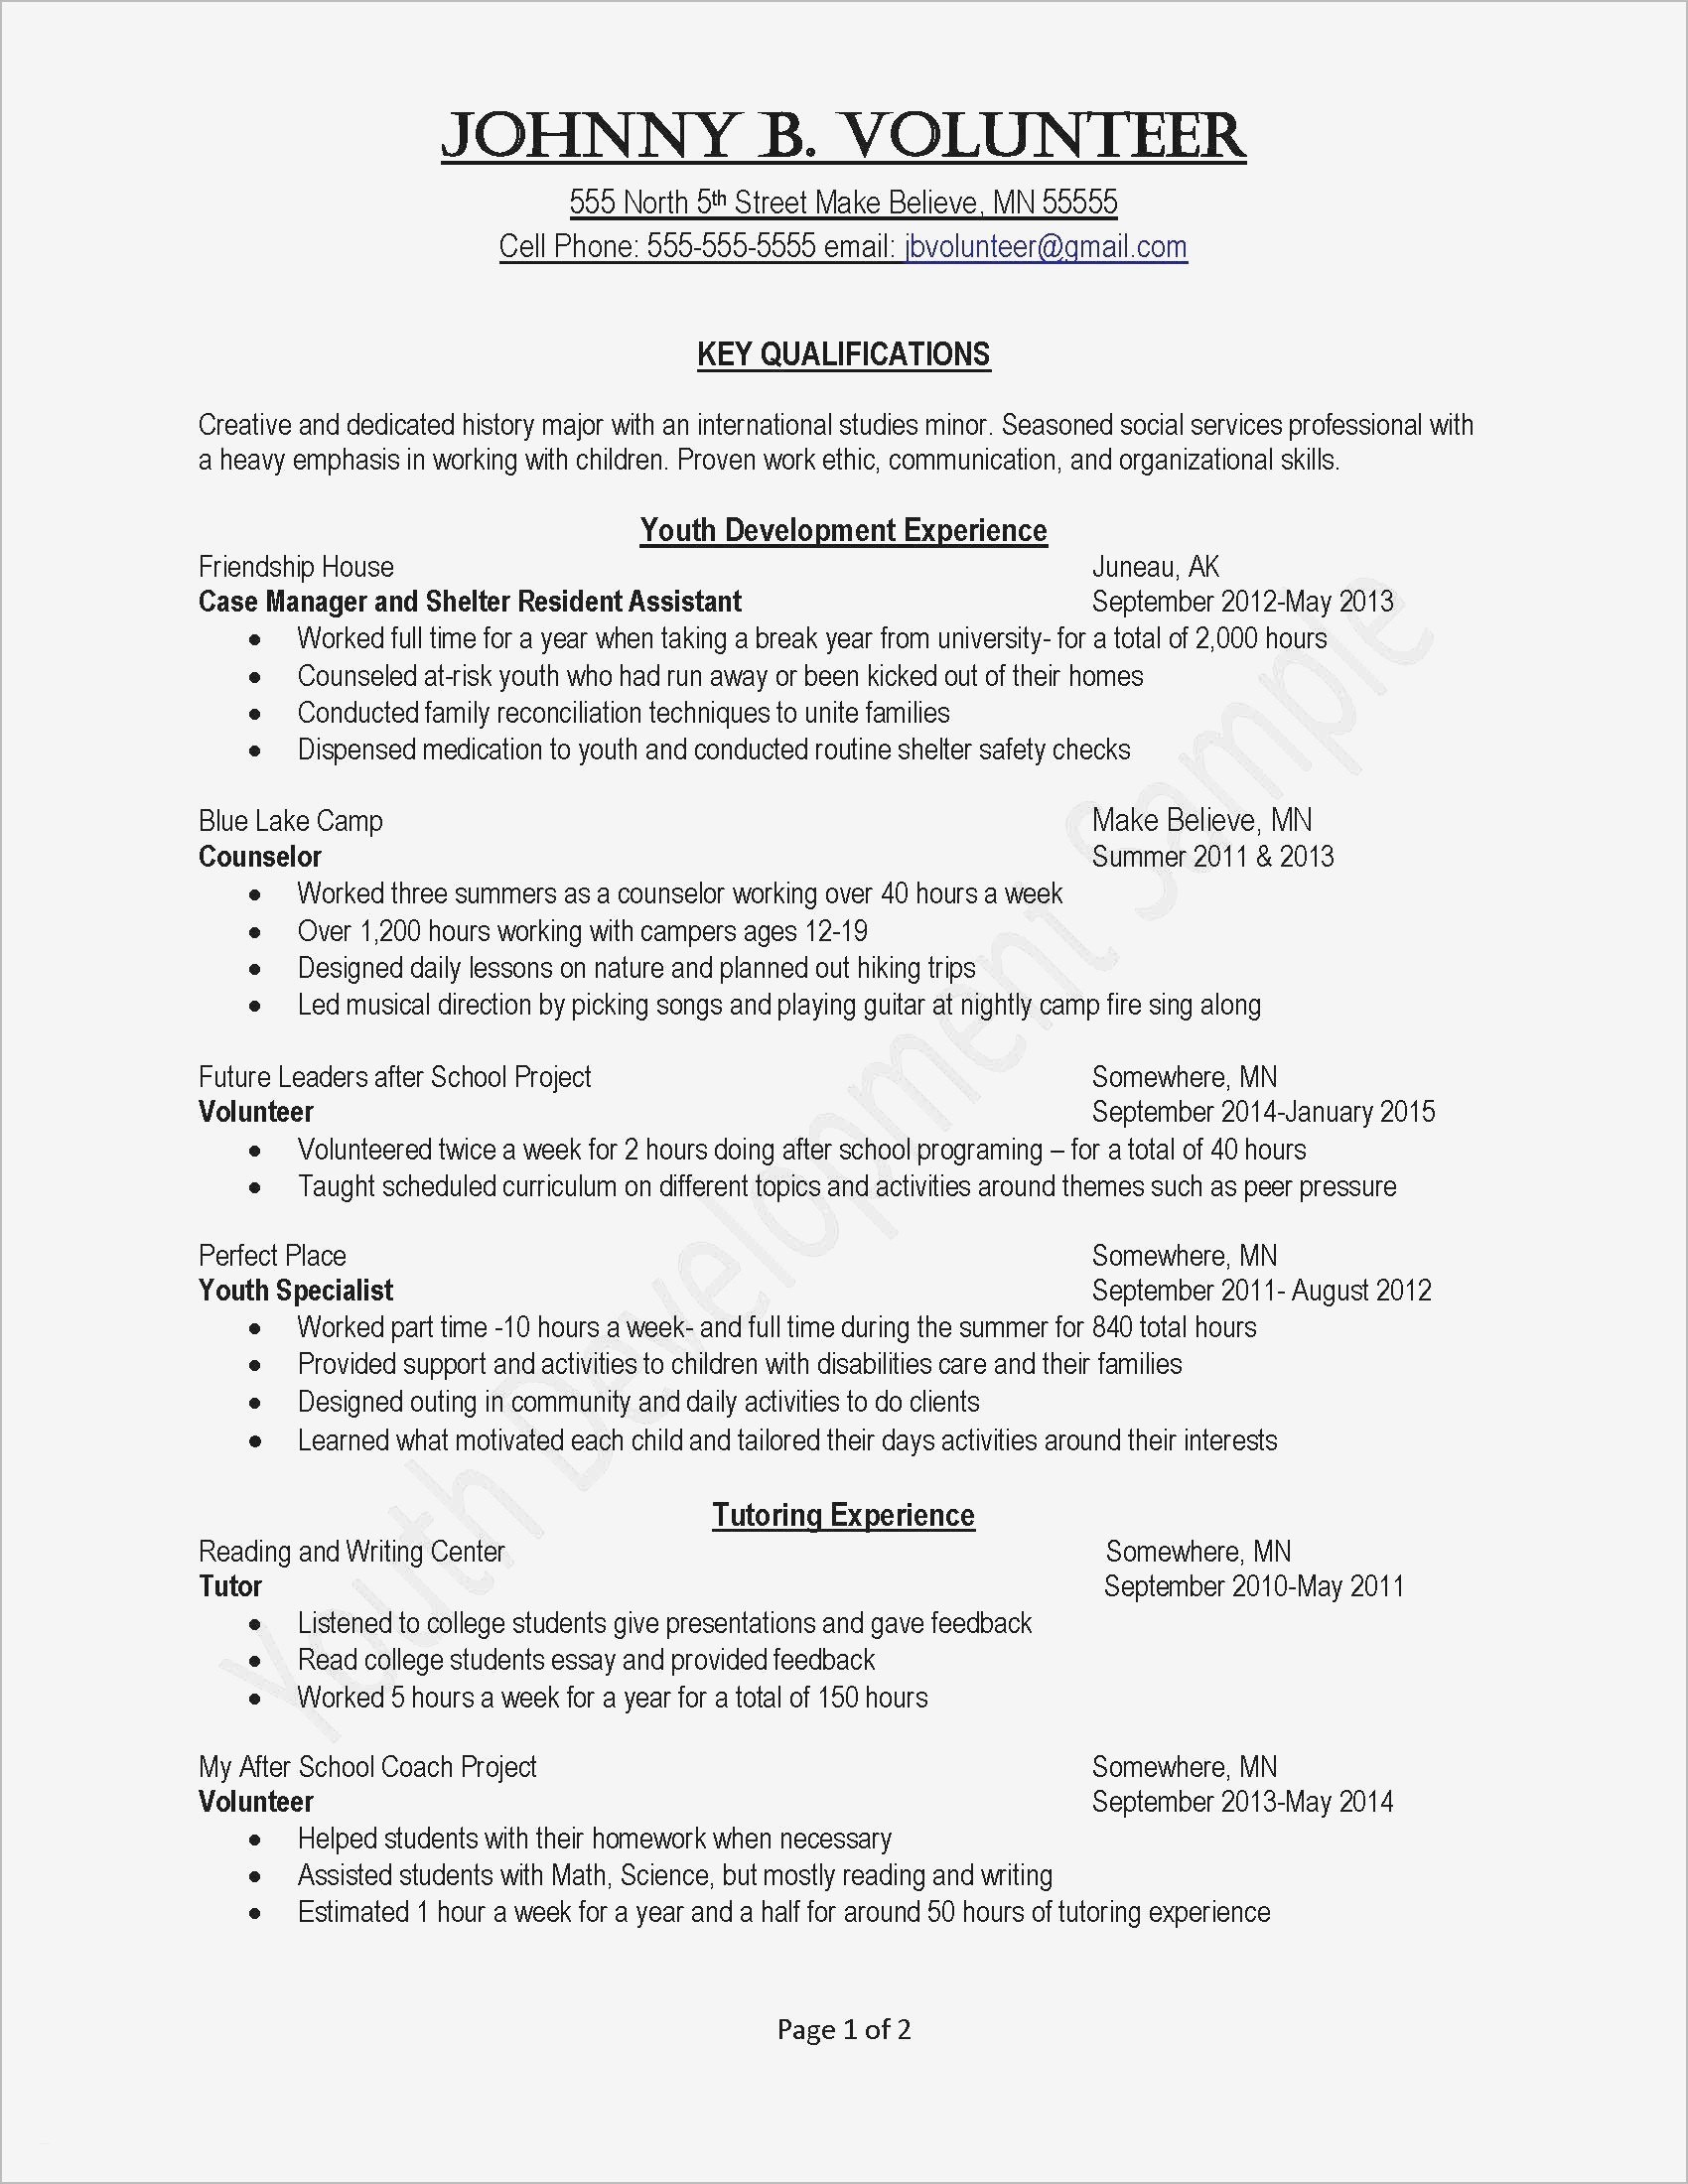 Draft Cover Letter Template - Copy A Cover Letter for A Job Application Beautiful Elegant Job